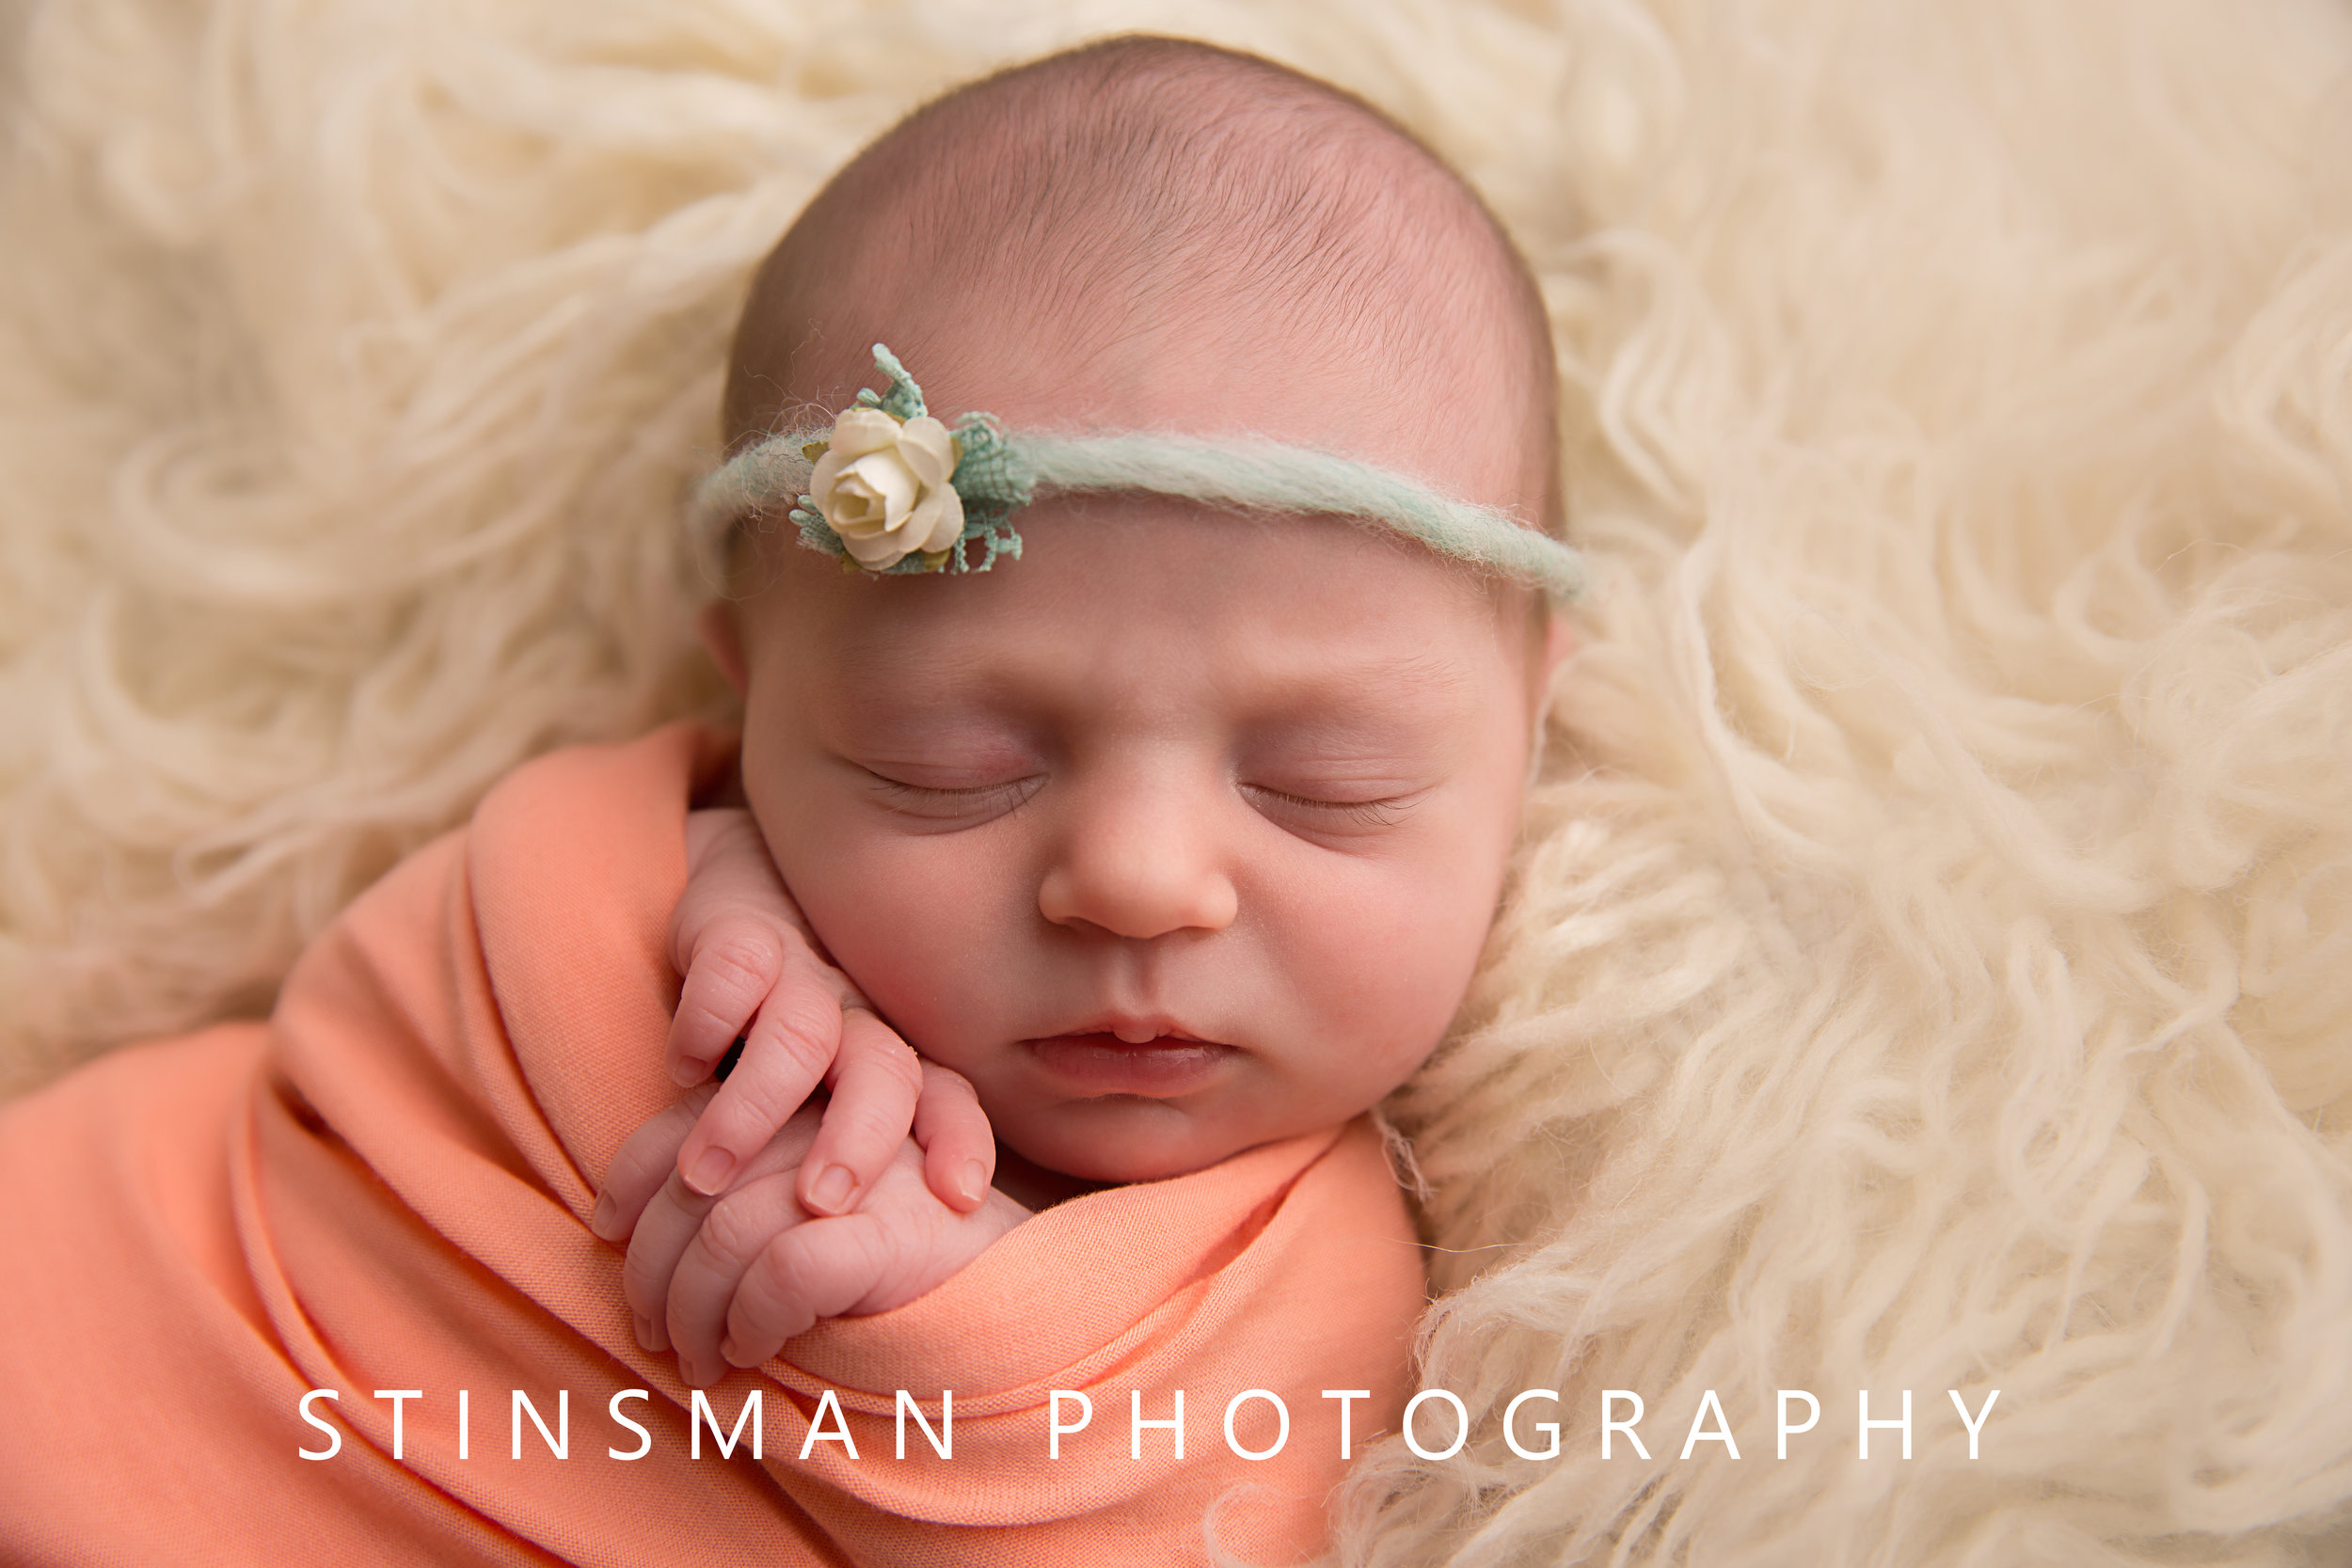 newborn baby girl wrapped in pink with a white and teal flower bow by stinsman photography in new jersey